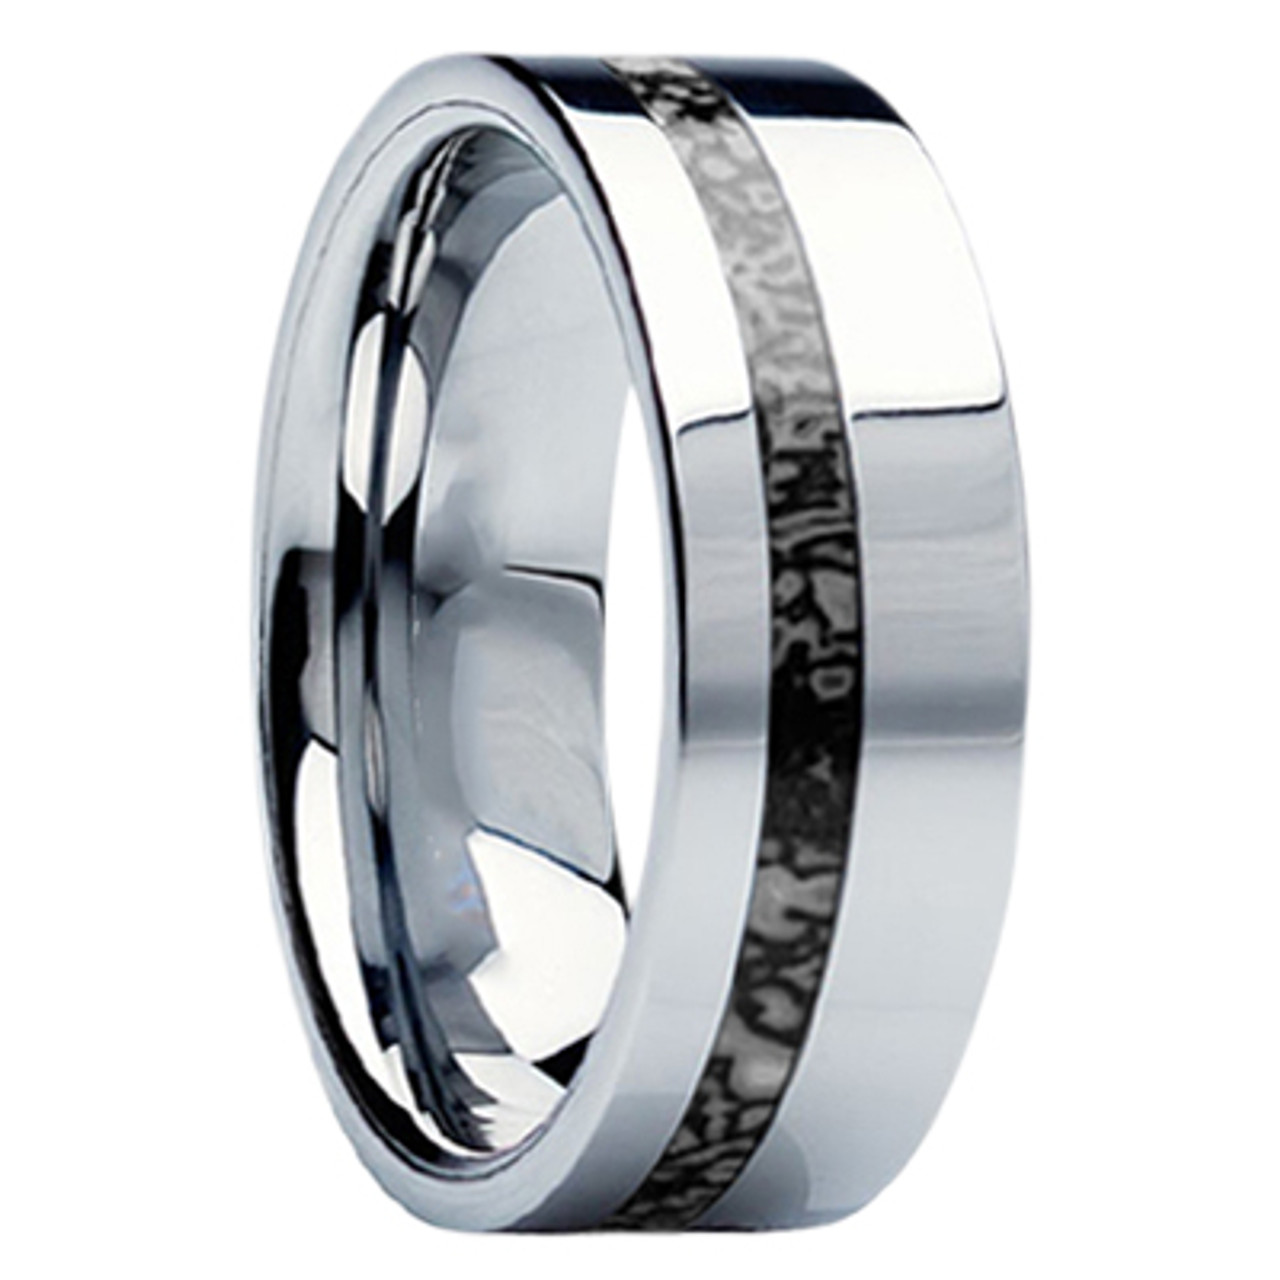 It is a graphic of 42 mm Unique Mens Wedding Bands in Titanium with Dinosaur Bone Inlay - D42M